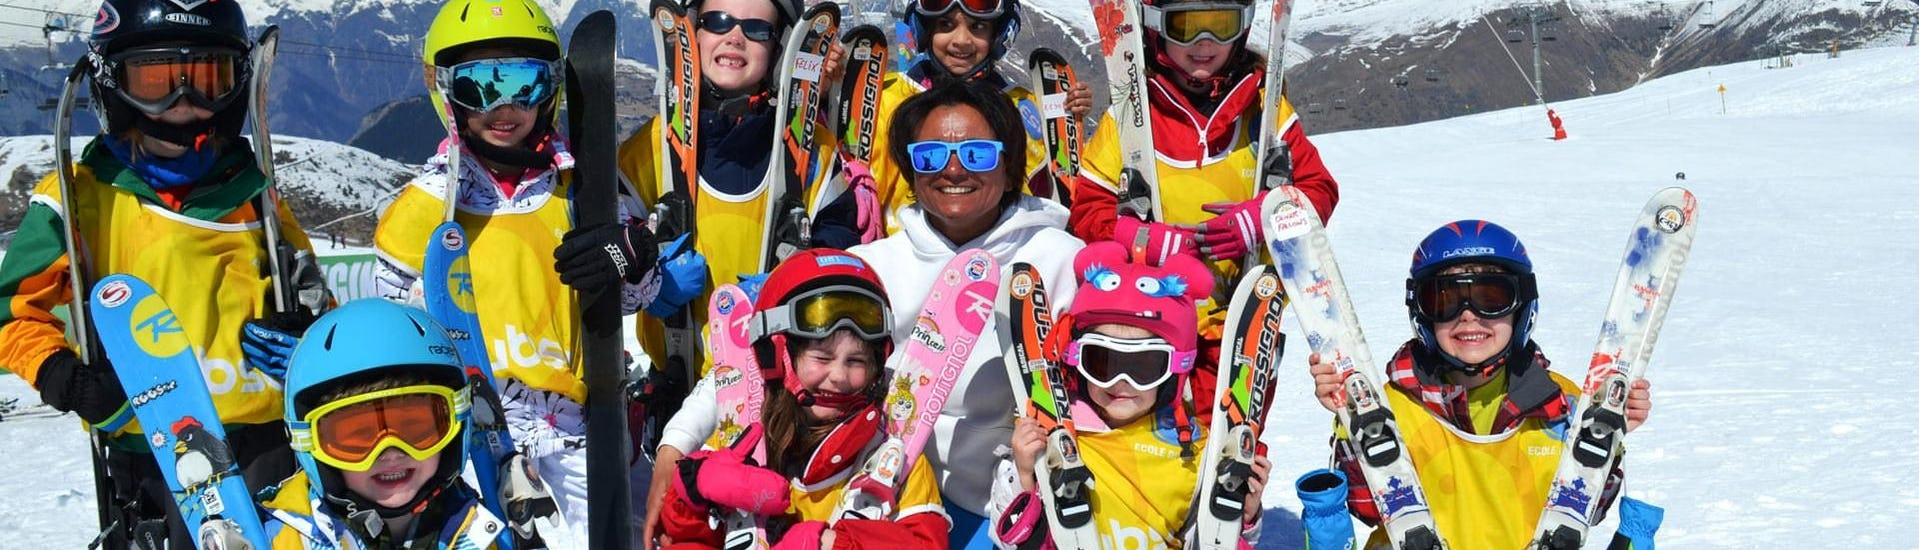 Kids Ski Lessons (4-5 years) - Afternoon